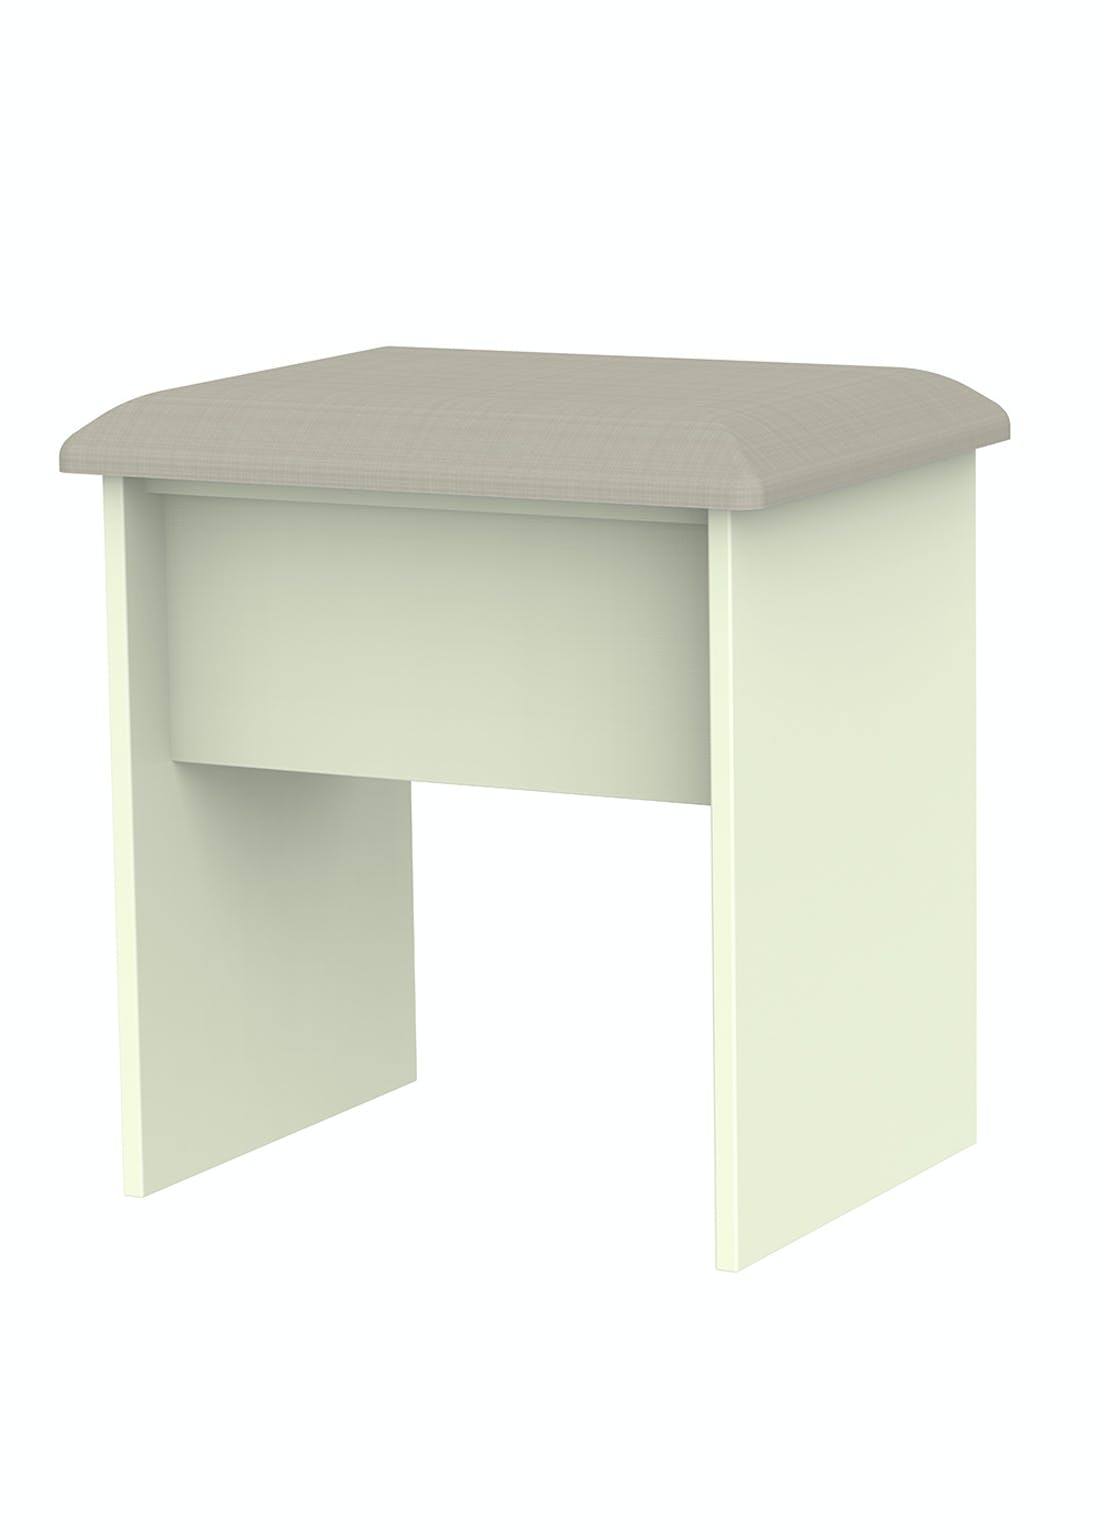 Swift Stamford Stool (51cm x 48cm x 37.5cm)